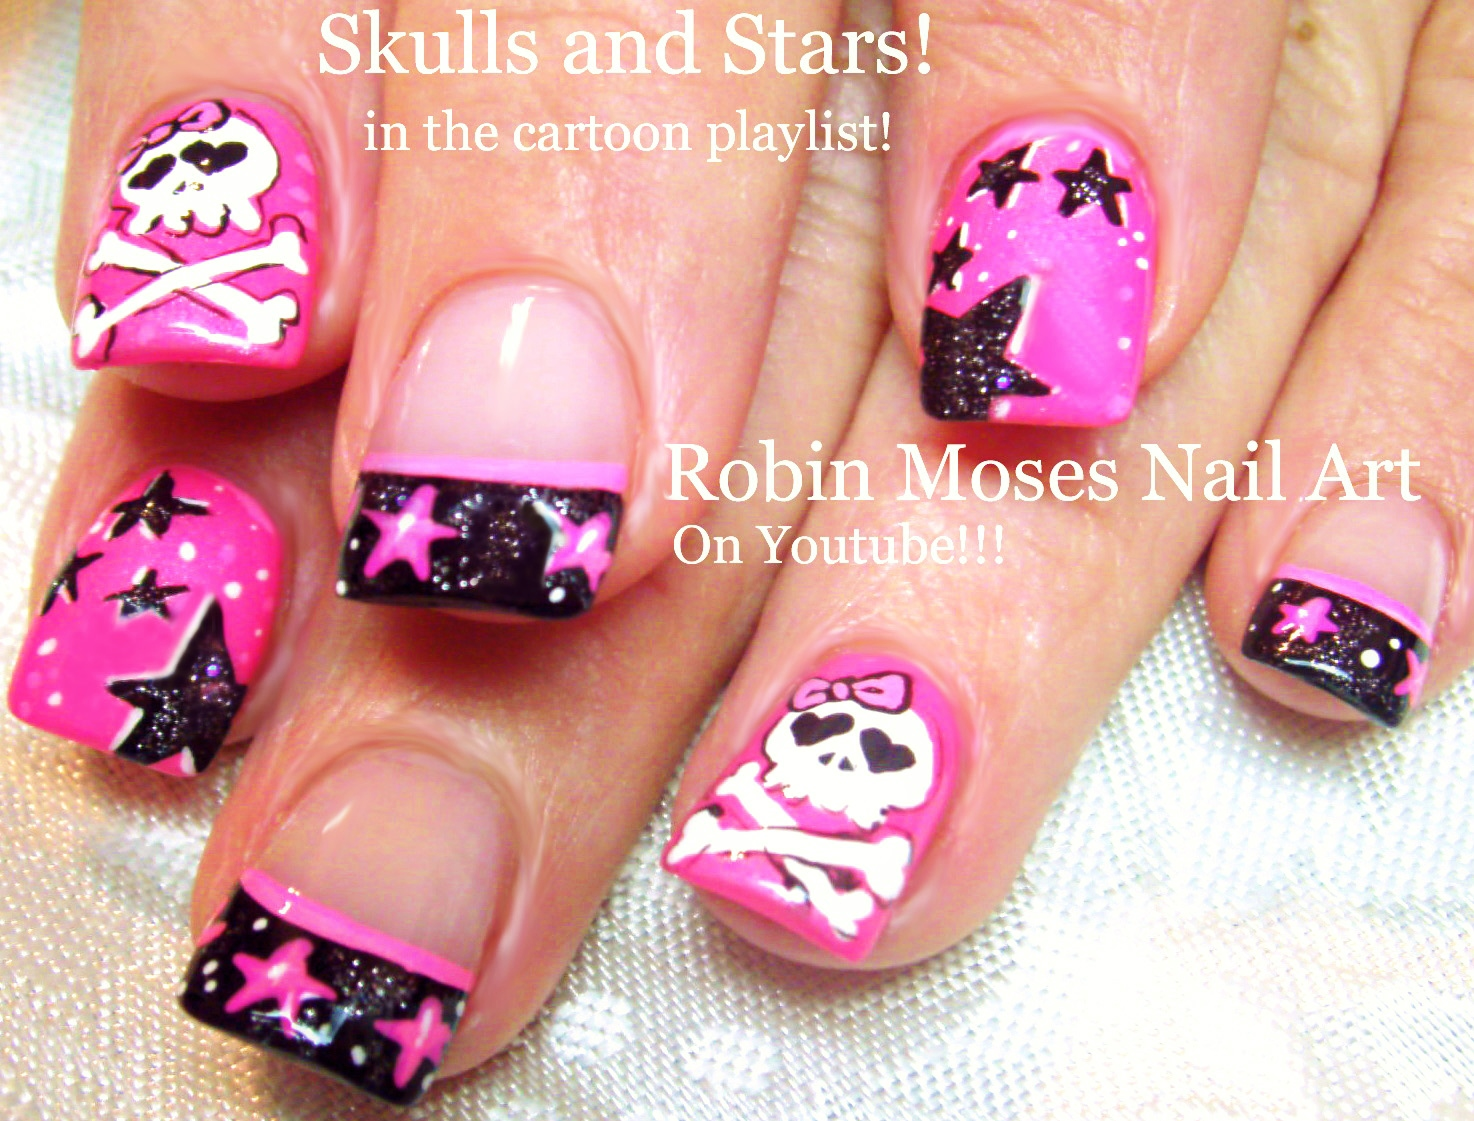 Robin moses nail art neon nails flaming skulls skull nails hot nails playlist simple diy nail art tutorials amazing nail design ideas for beginners to advanced nail techs prinsesfo Gallery